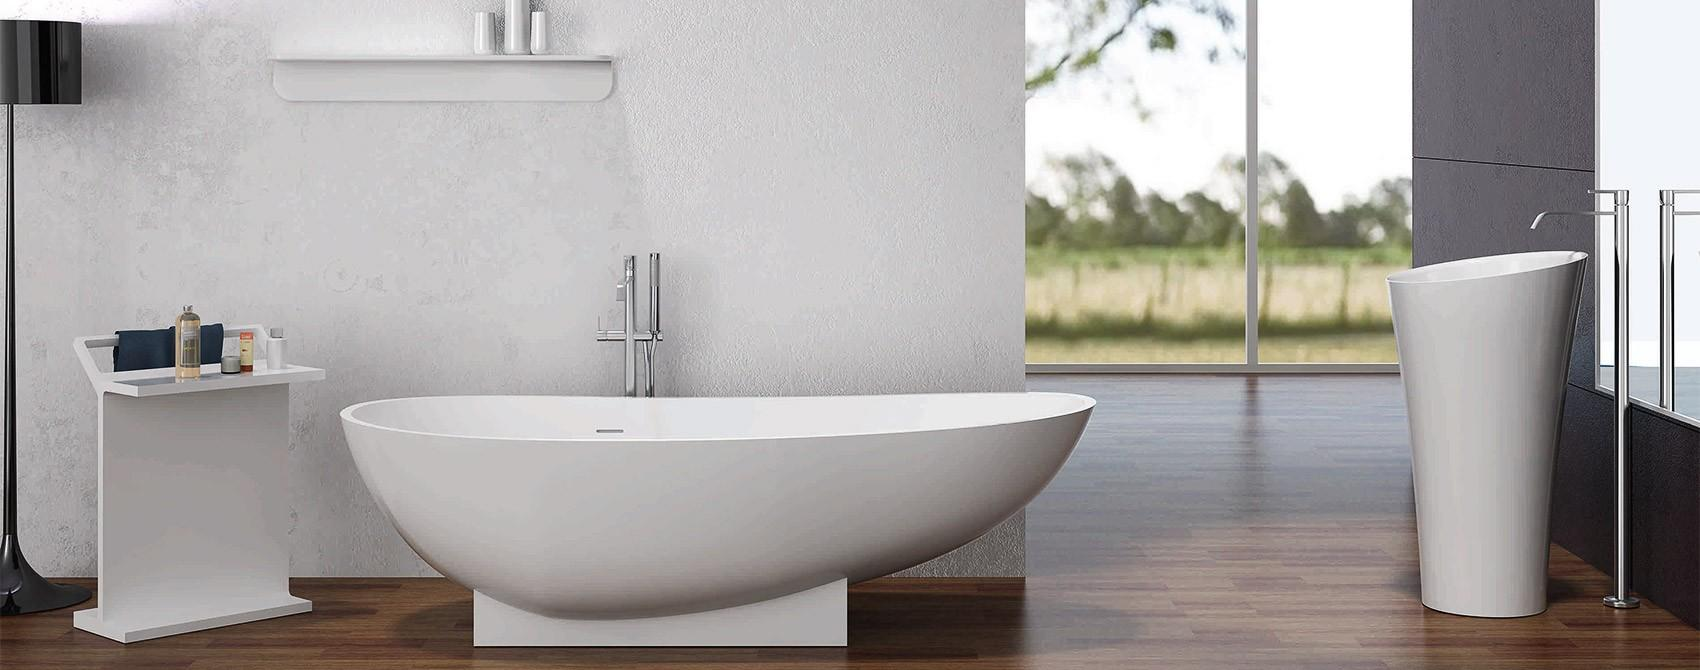 Freestanding bathtubs sydney 28 images freestanding for Bathroom companies sydney